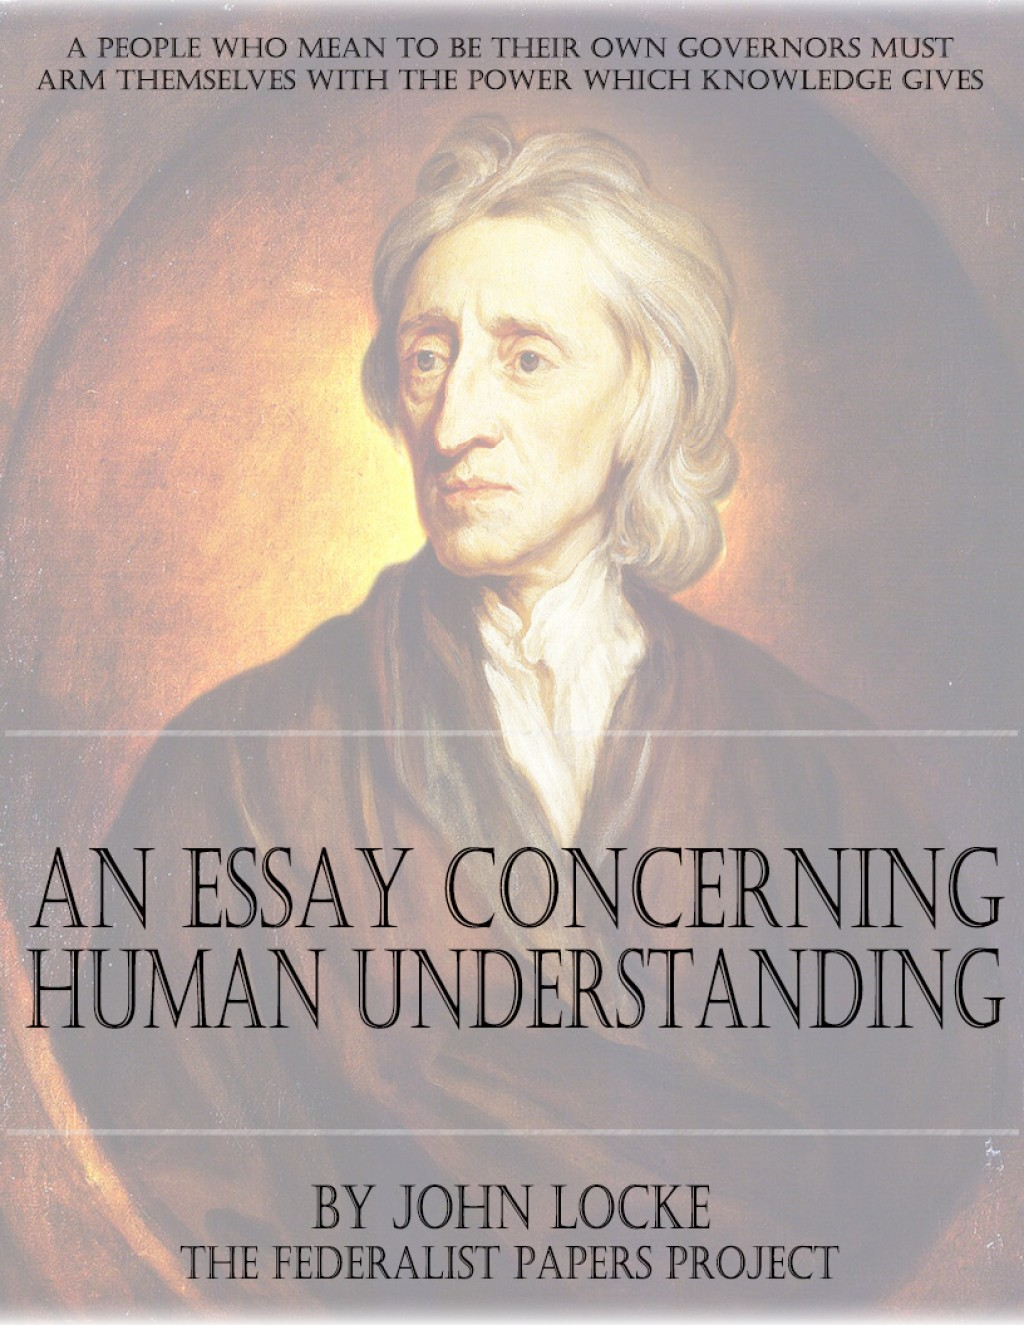 004 An Essay Concerning Human Understanding John Locke Cover Page1 Stunning Summary Pdf Tabula Rasa Book 2 Chapter 27 Large